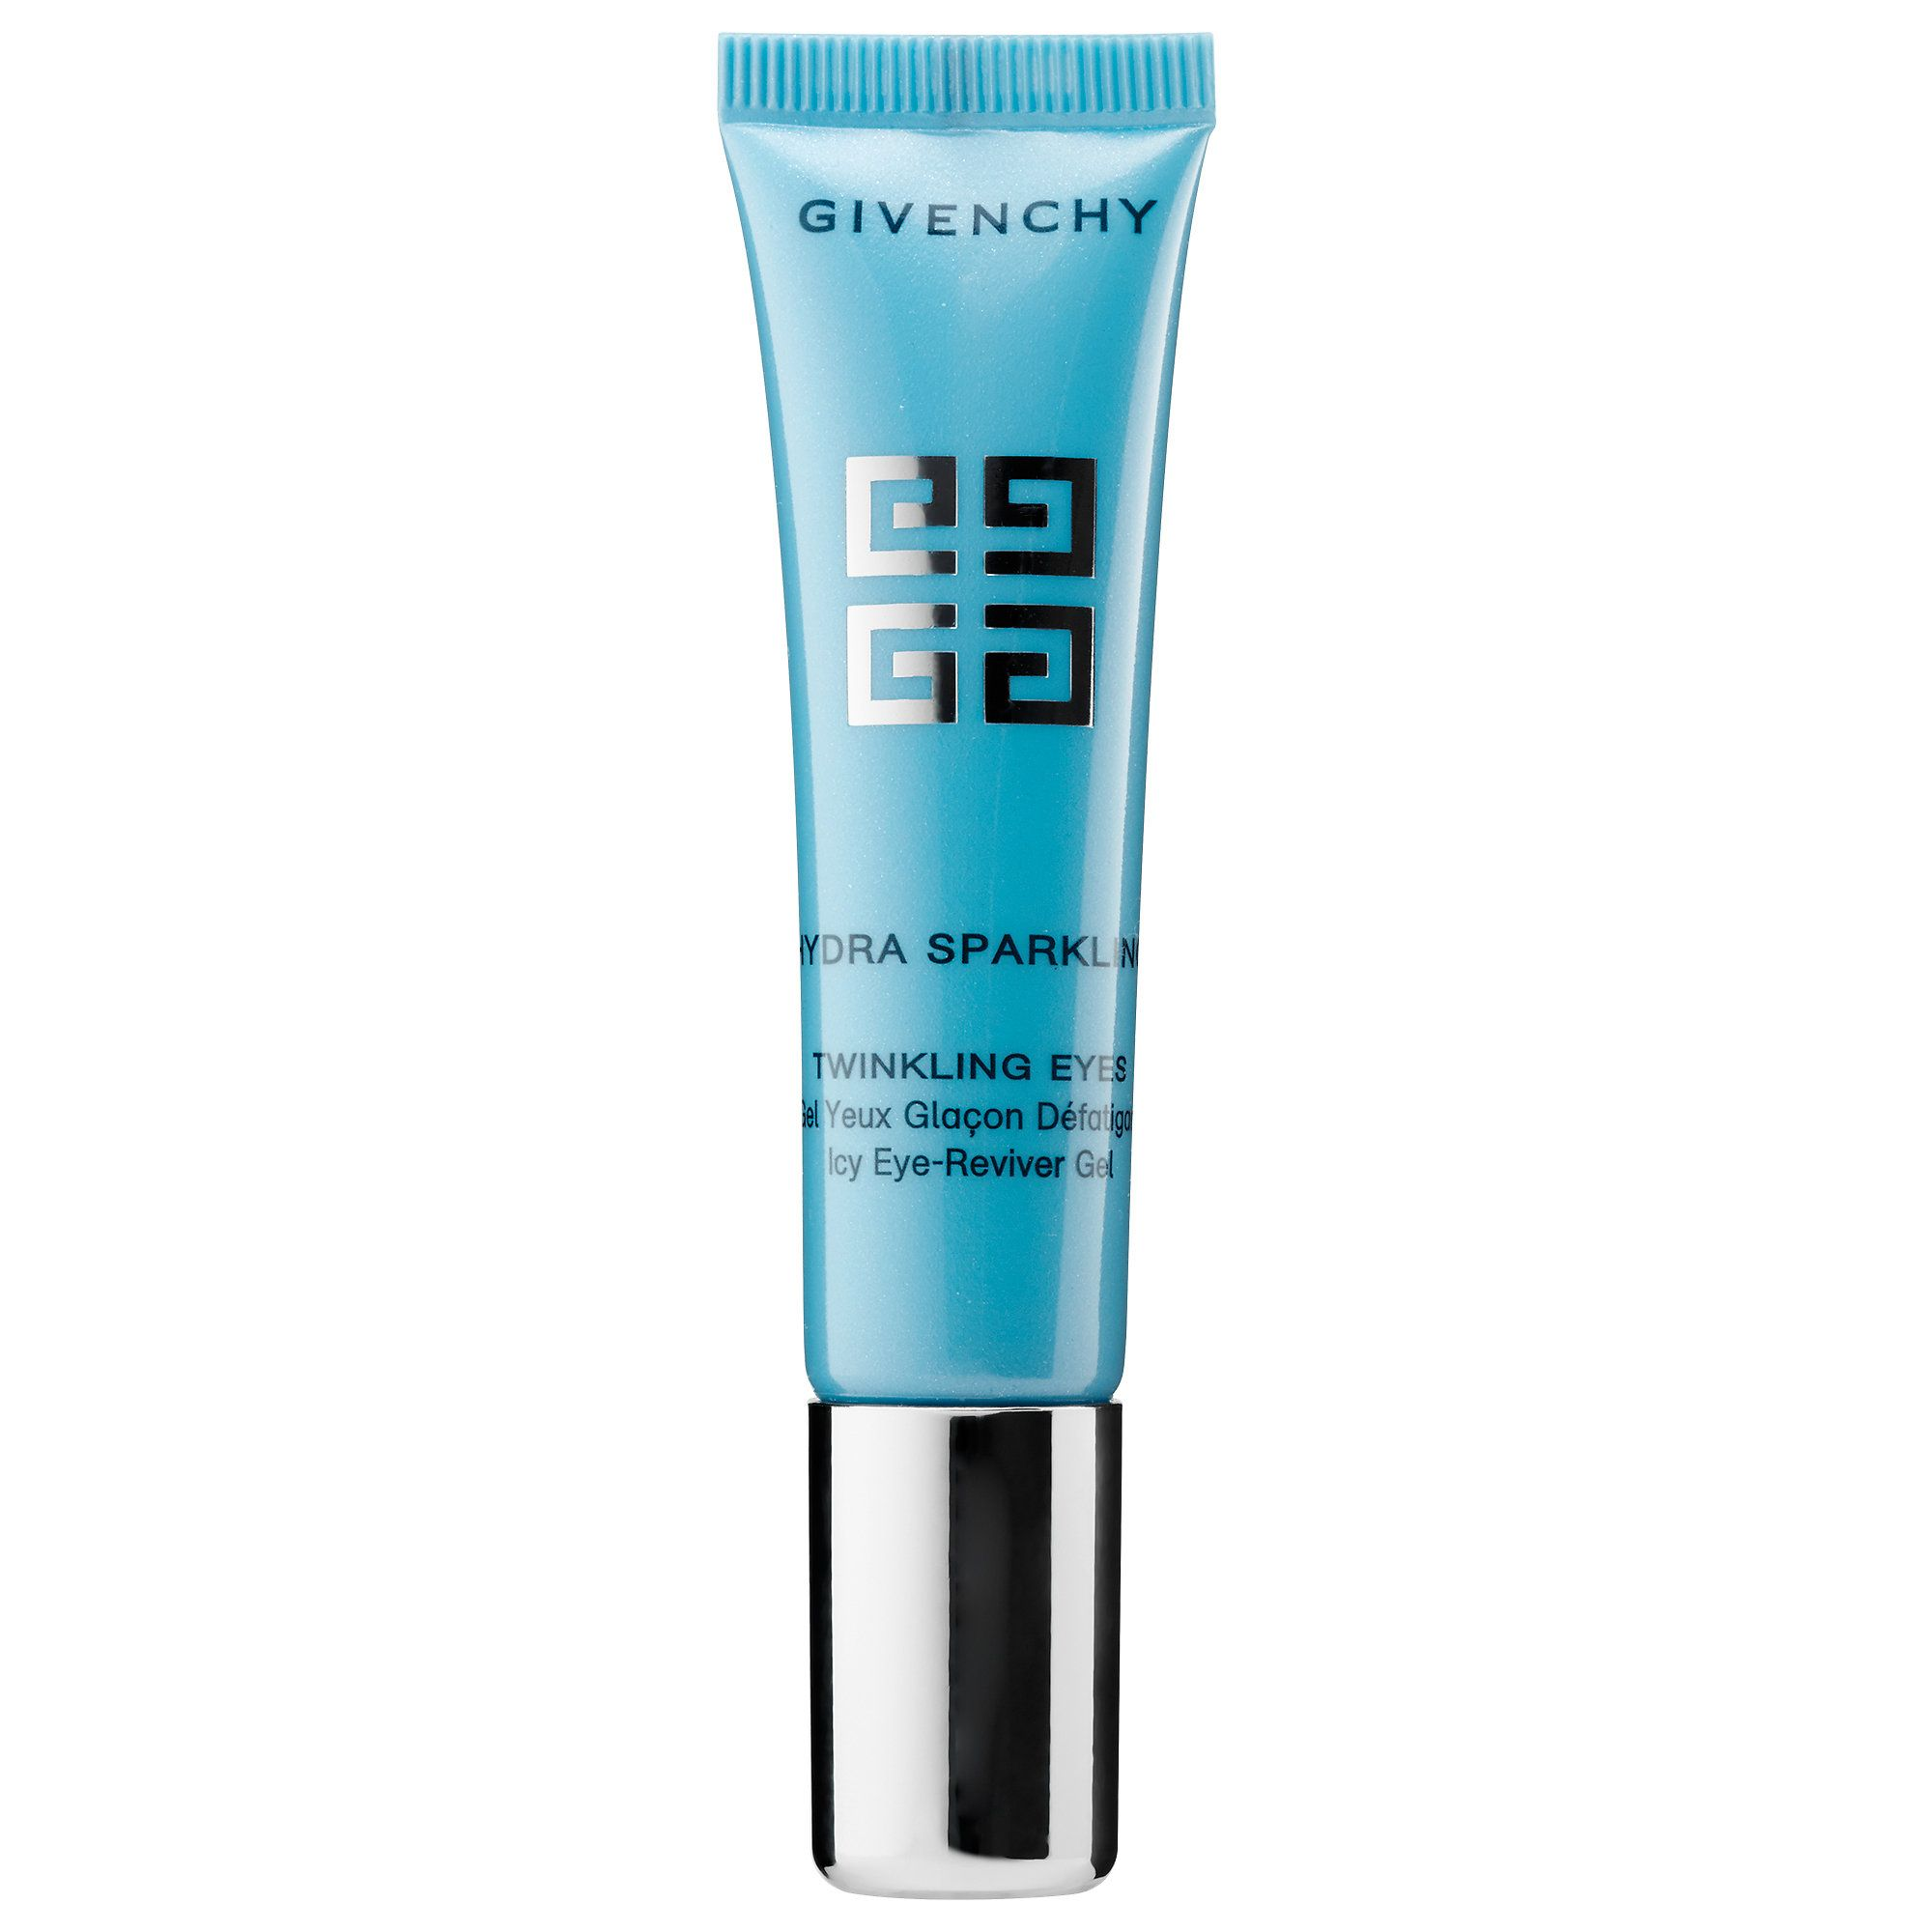 af1ecc4702 Hydra Sparkling Twinkling Eyes Icy Eye-Reviver Gel - Givenchy ...